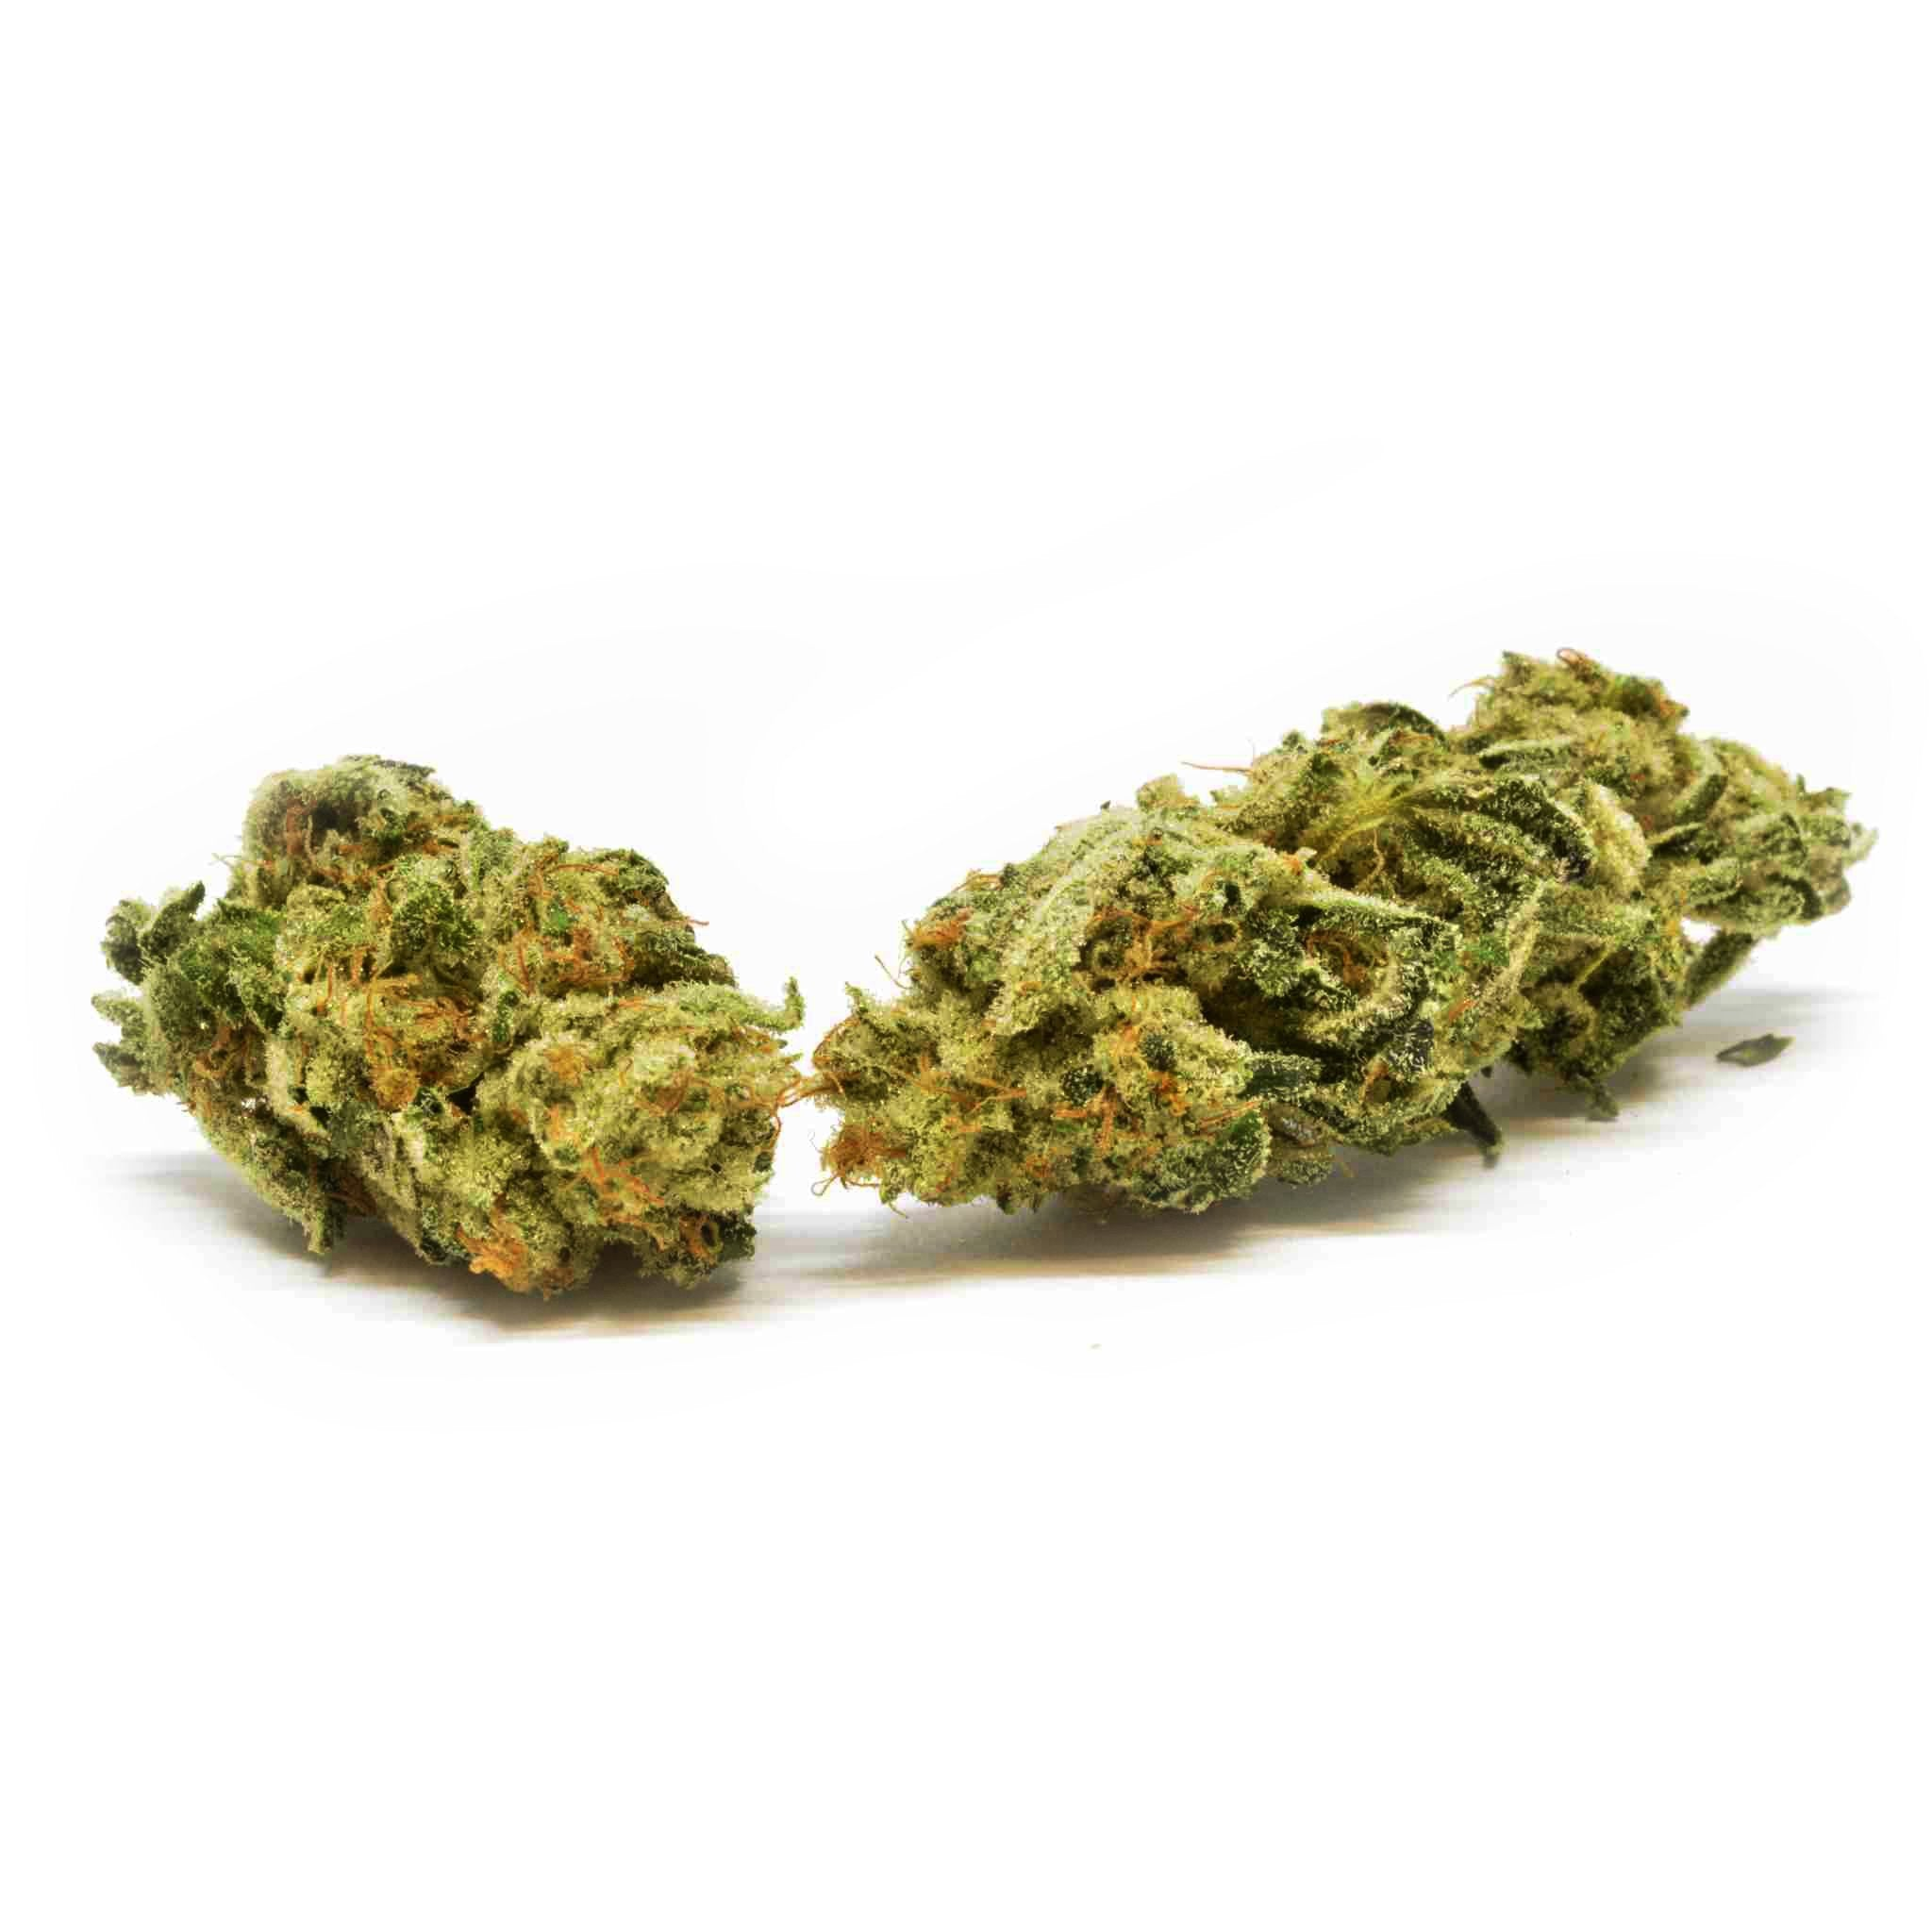 Critical Sensi Star - CBD Cannabis | Swiss Botanic | CBD Cannabis | uWeed | Swiss CBD Shop | Buy Online Shop CBD Switzerland